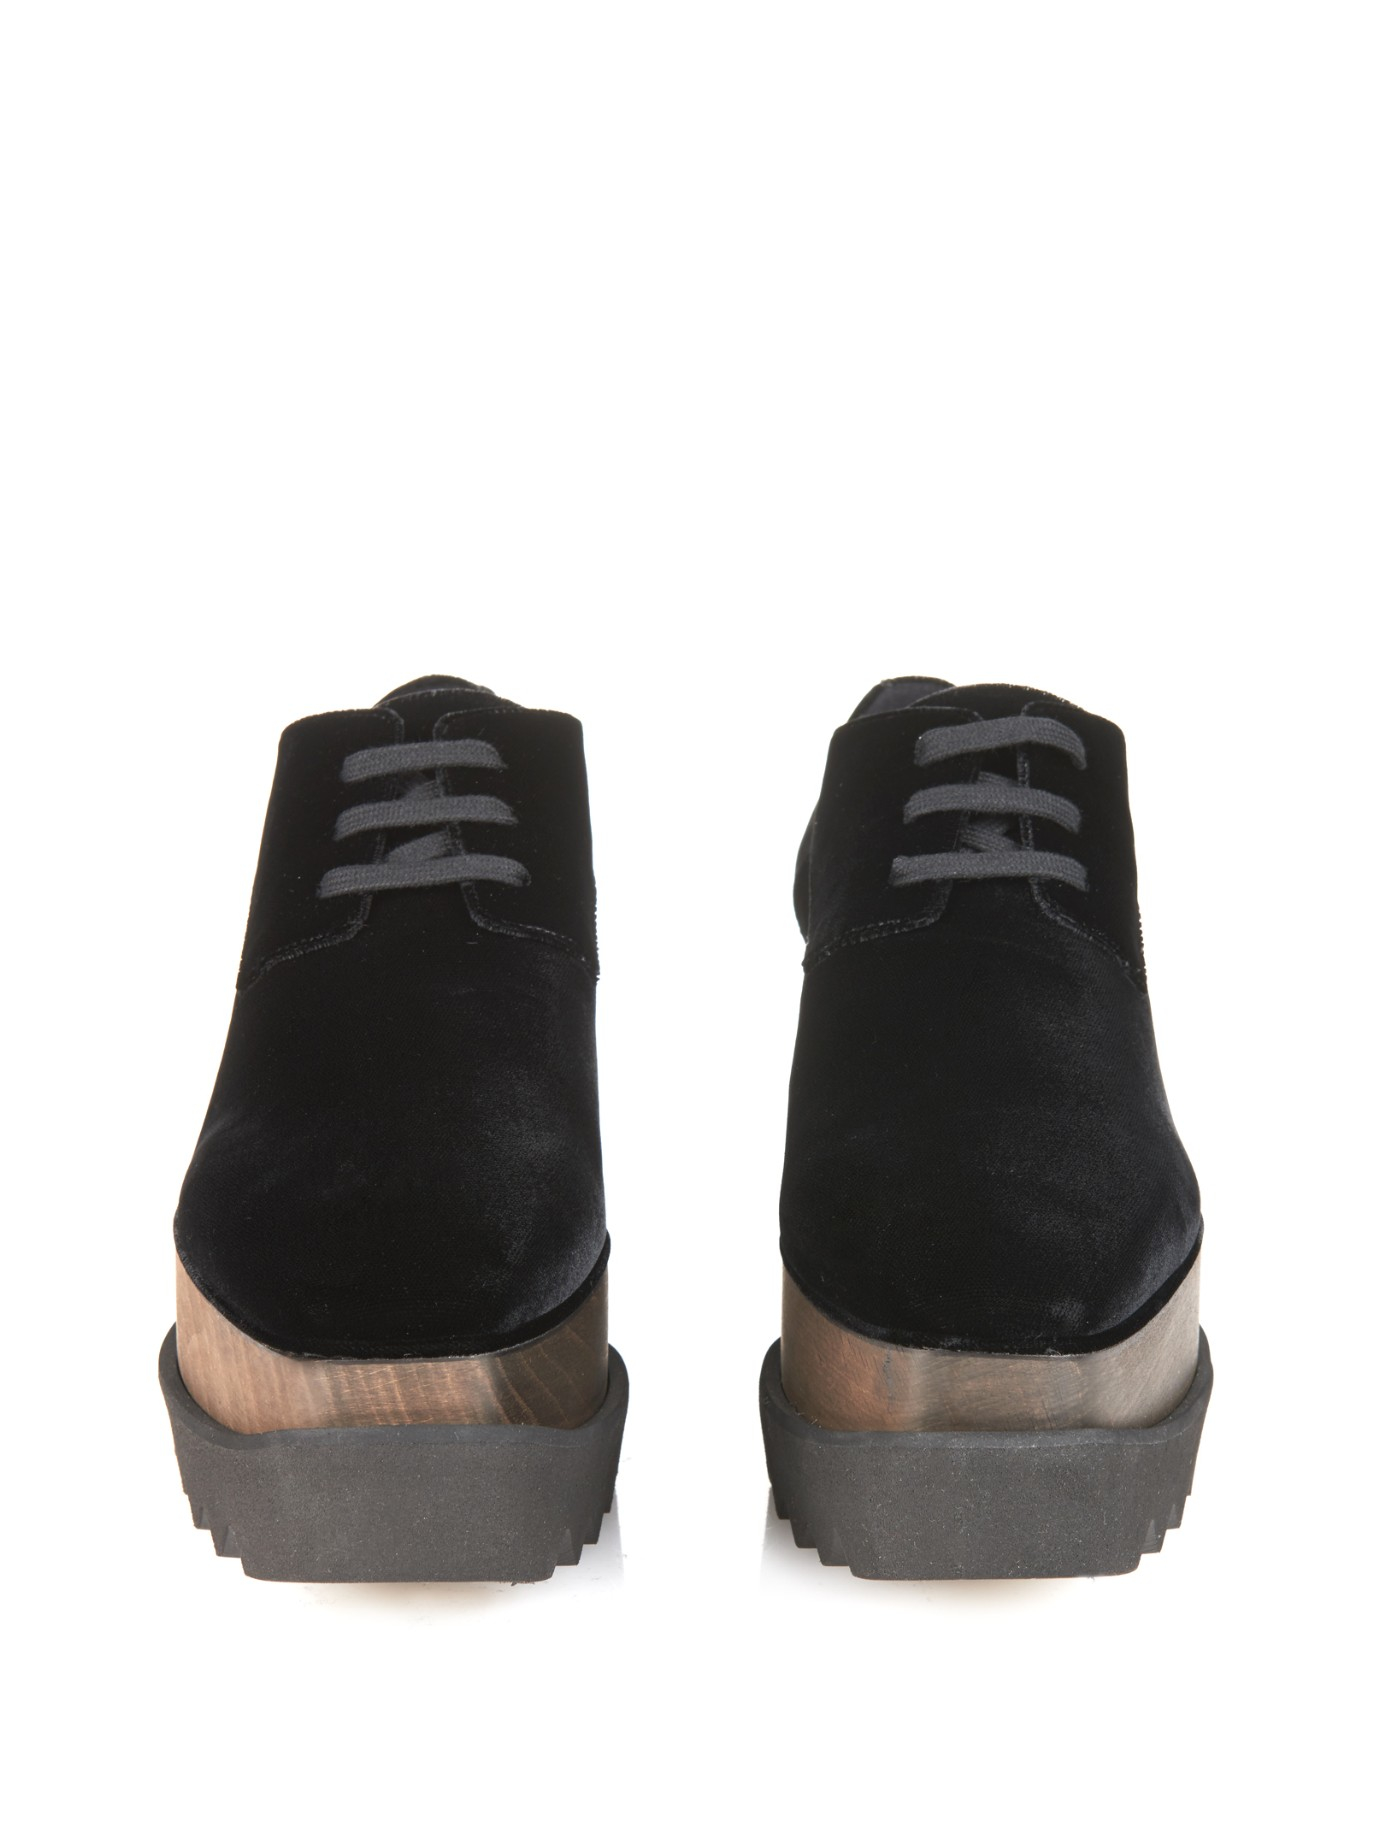 Stella Mccartney Chaussures Plate-forme Lacets - Noir crbZoIH4